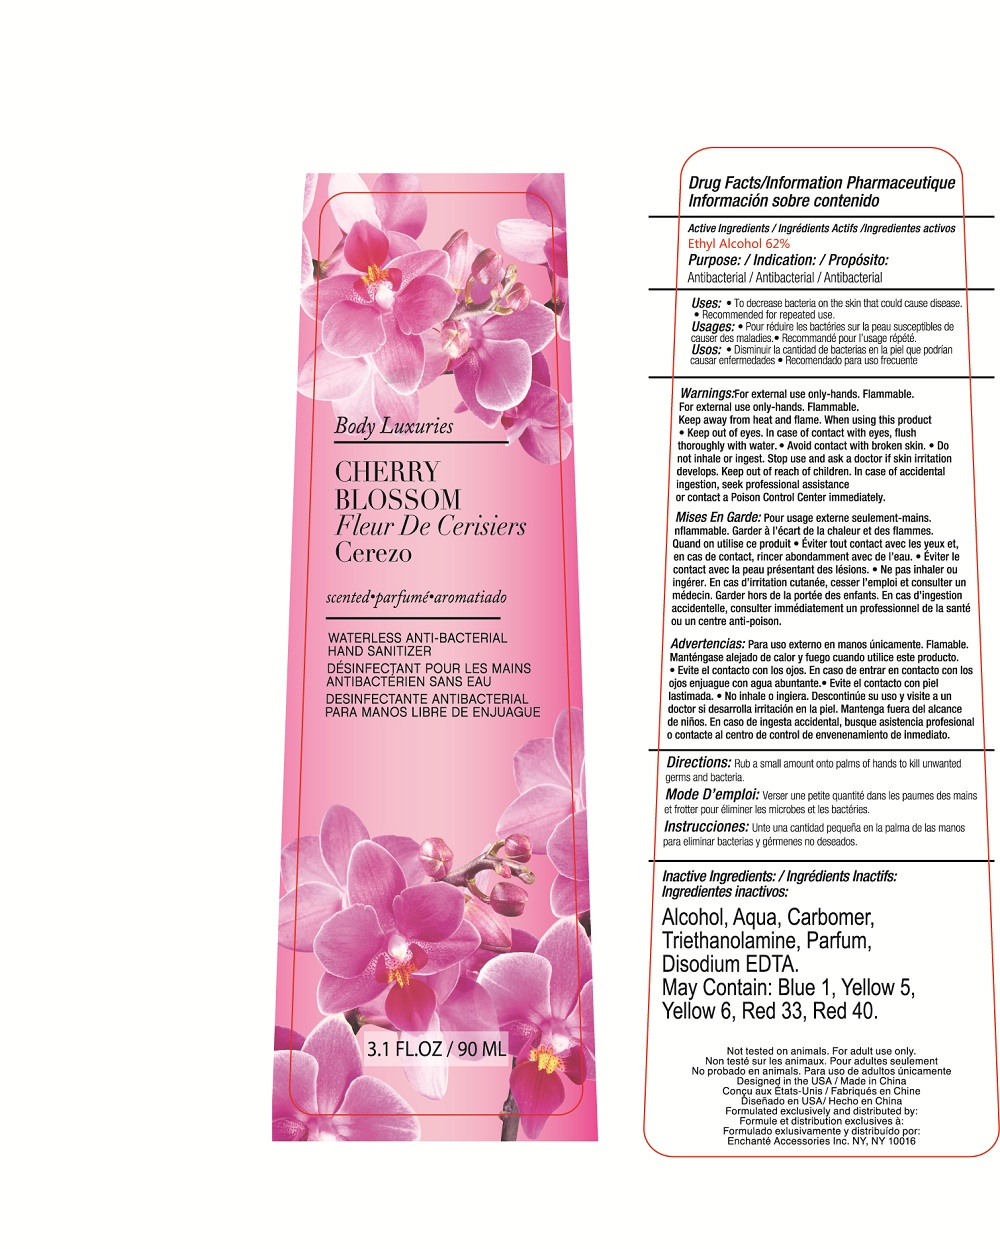 Body Luxuries Cherry Blossom Waterless Anti-bacterial Hand Sanitizer (Alcohol) Liquid [Enchante Accessories Inc. ]